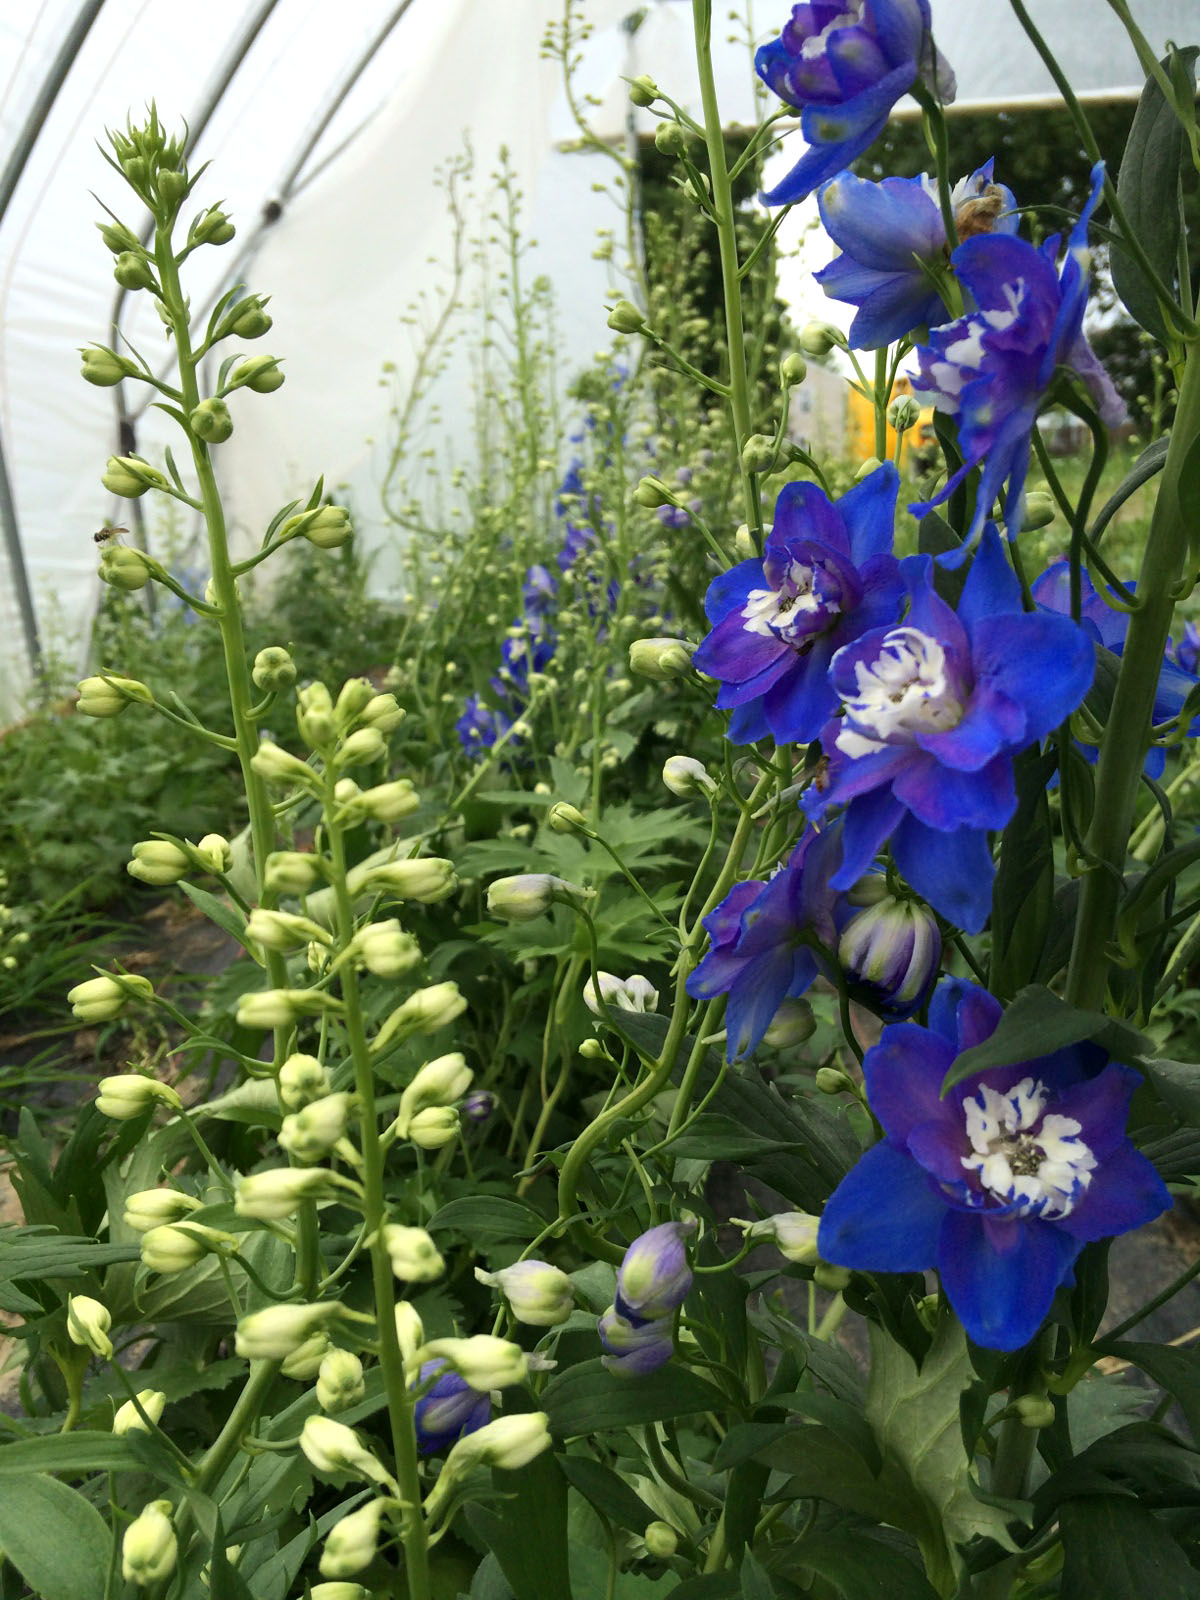 Blue delphinium stems are tall and popping with excitingly vibrant blooms!